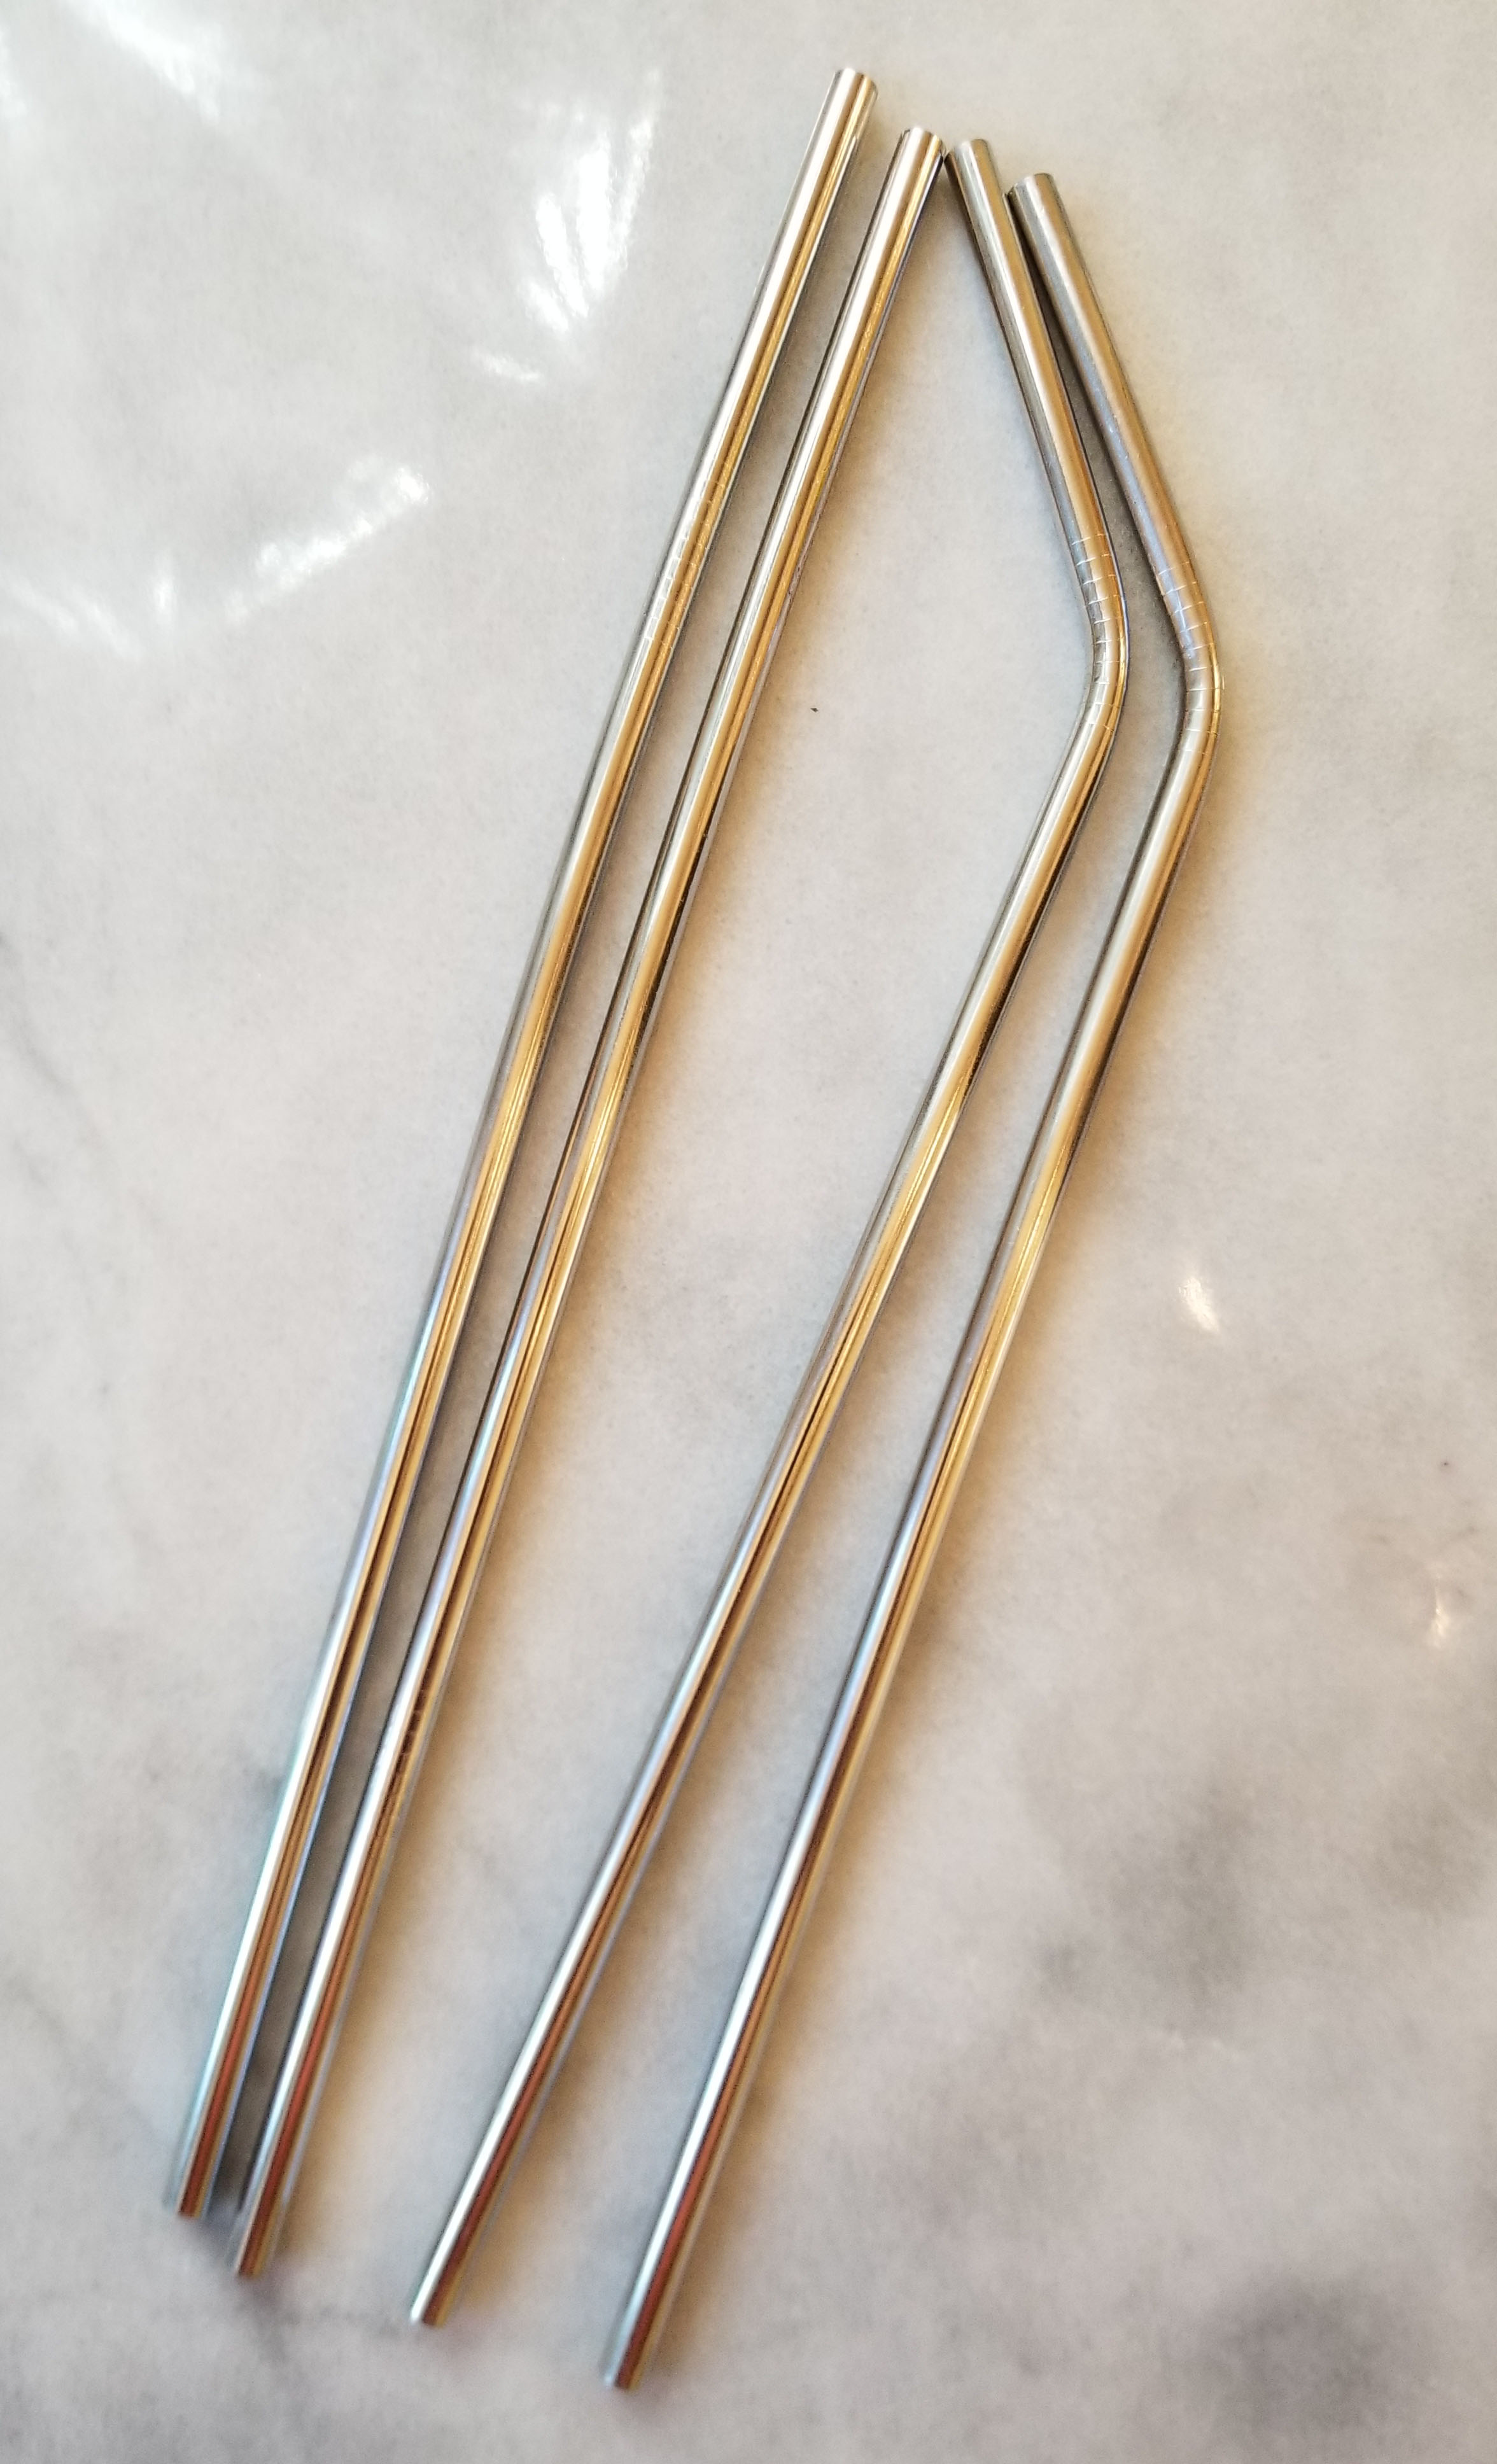 Stainless Steel Reusable Straws   My Favorite Amazon Finds   Laurel and Iron